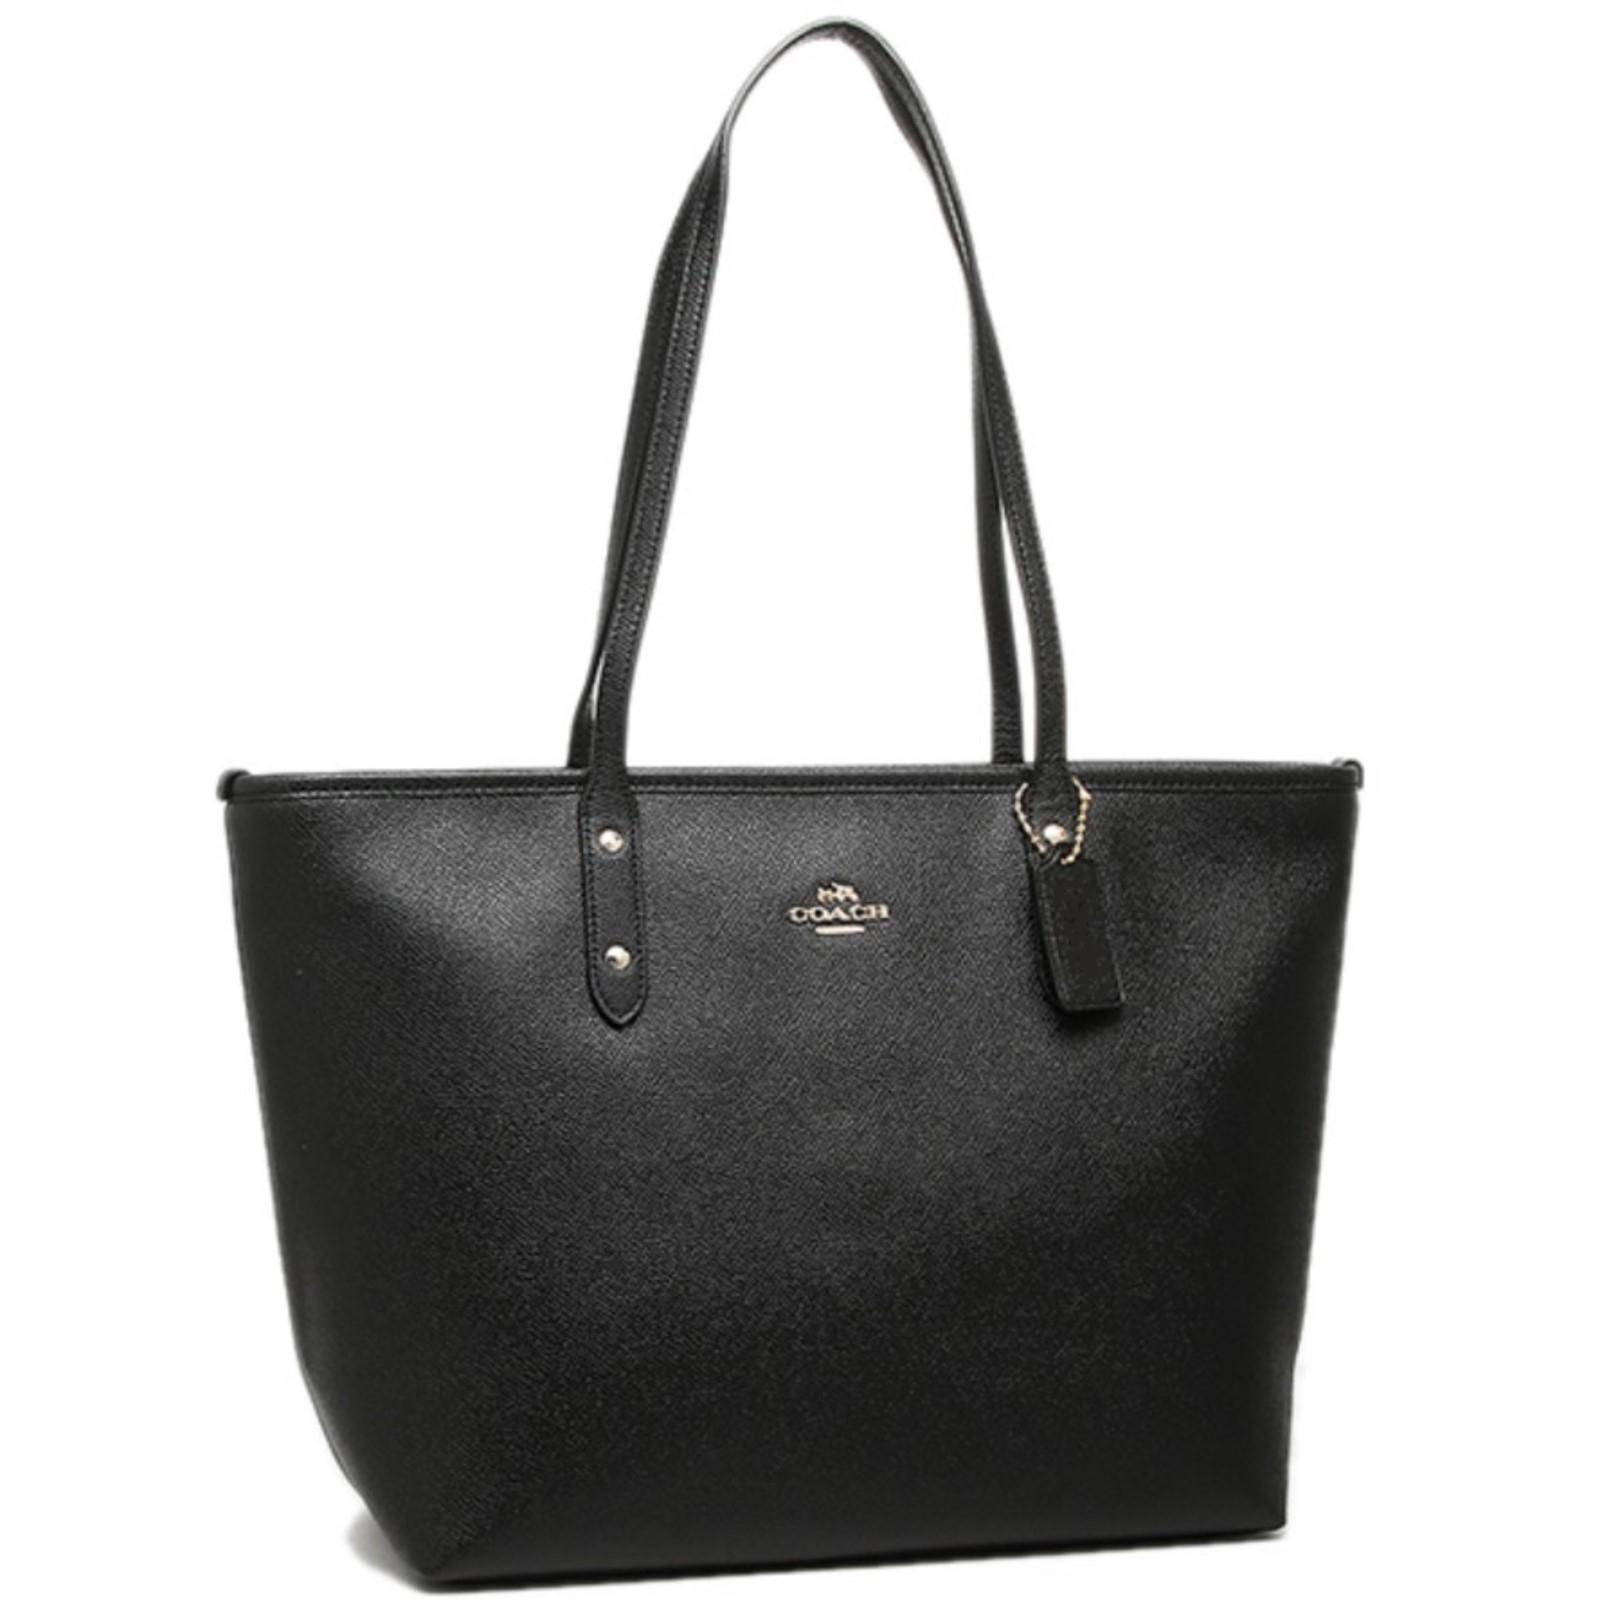 ... discount coach shoulder leather f58846 leather tote in black 2a8b3 96324 dd8937bf362a7